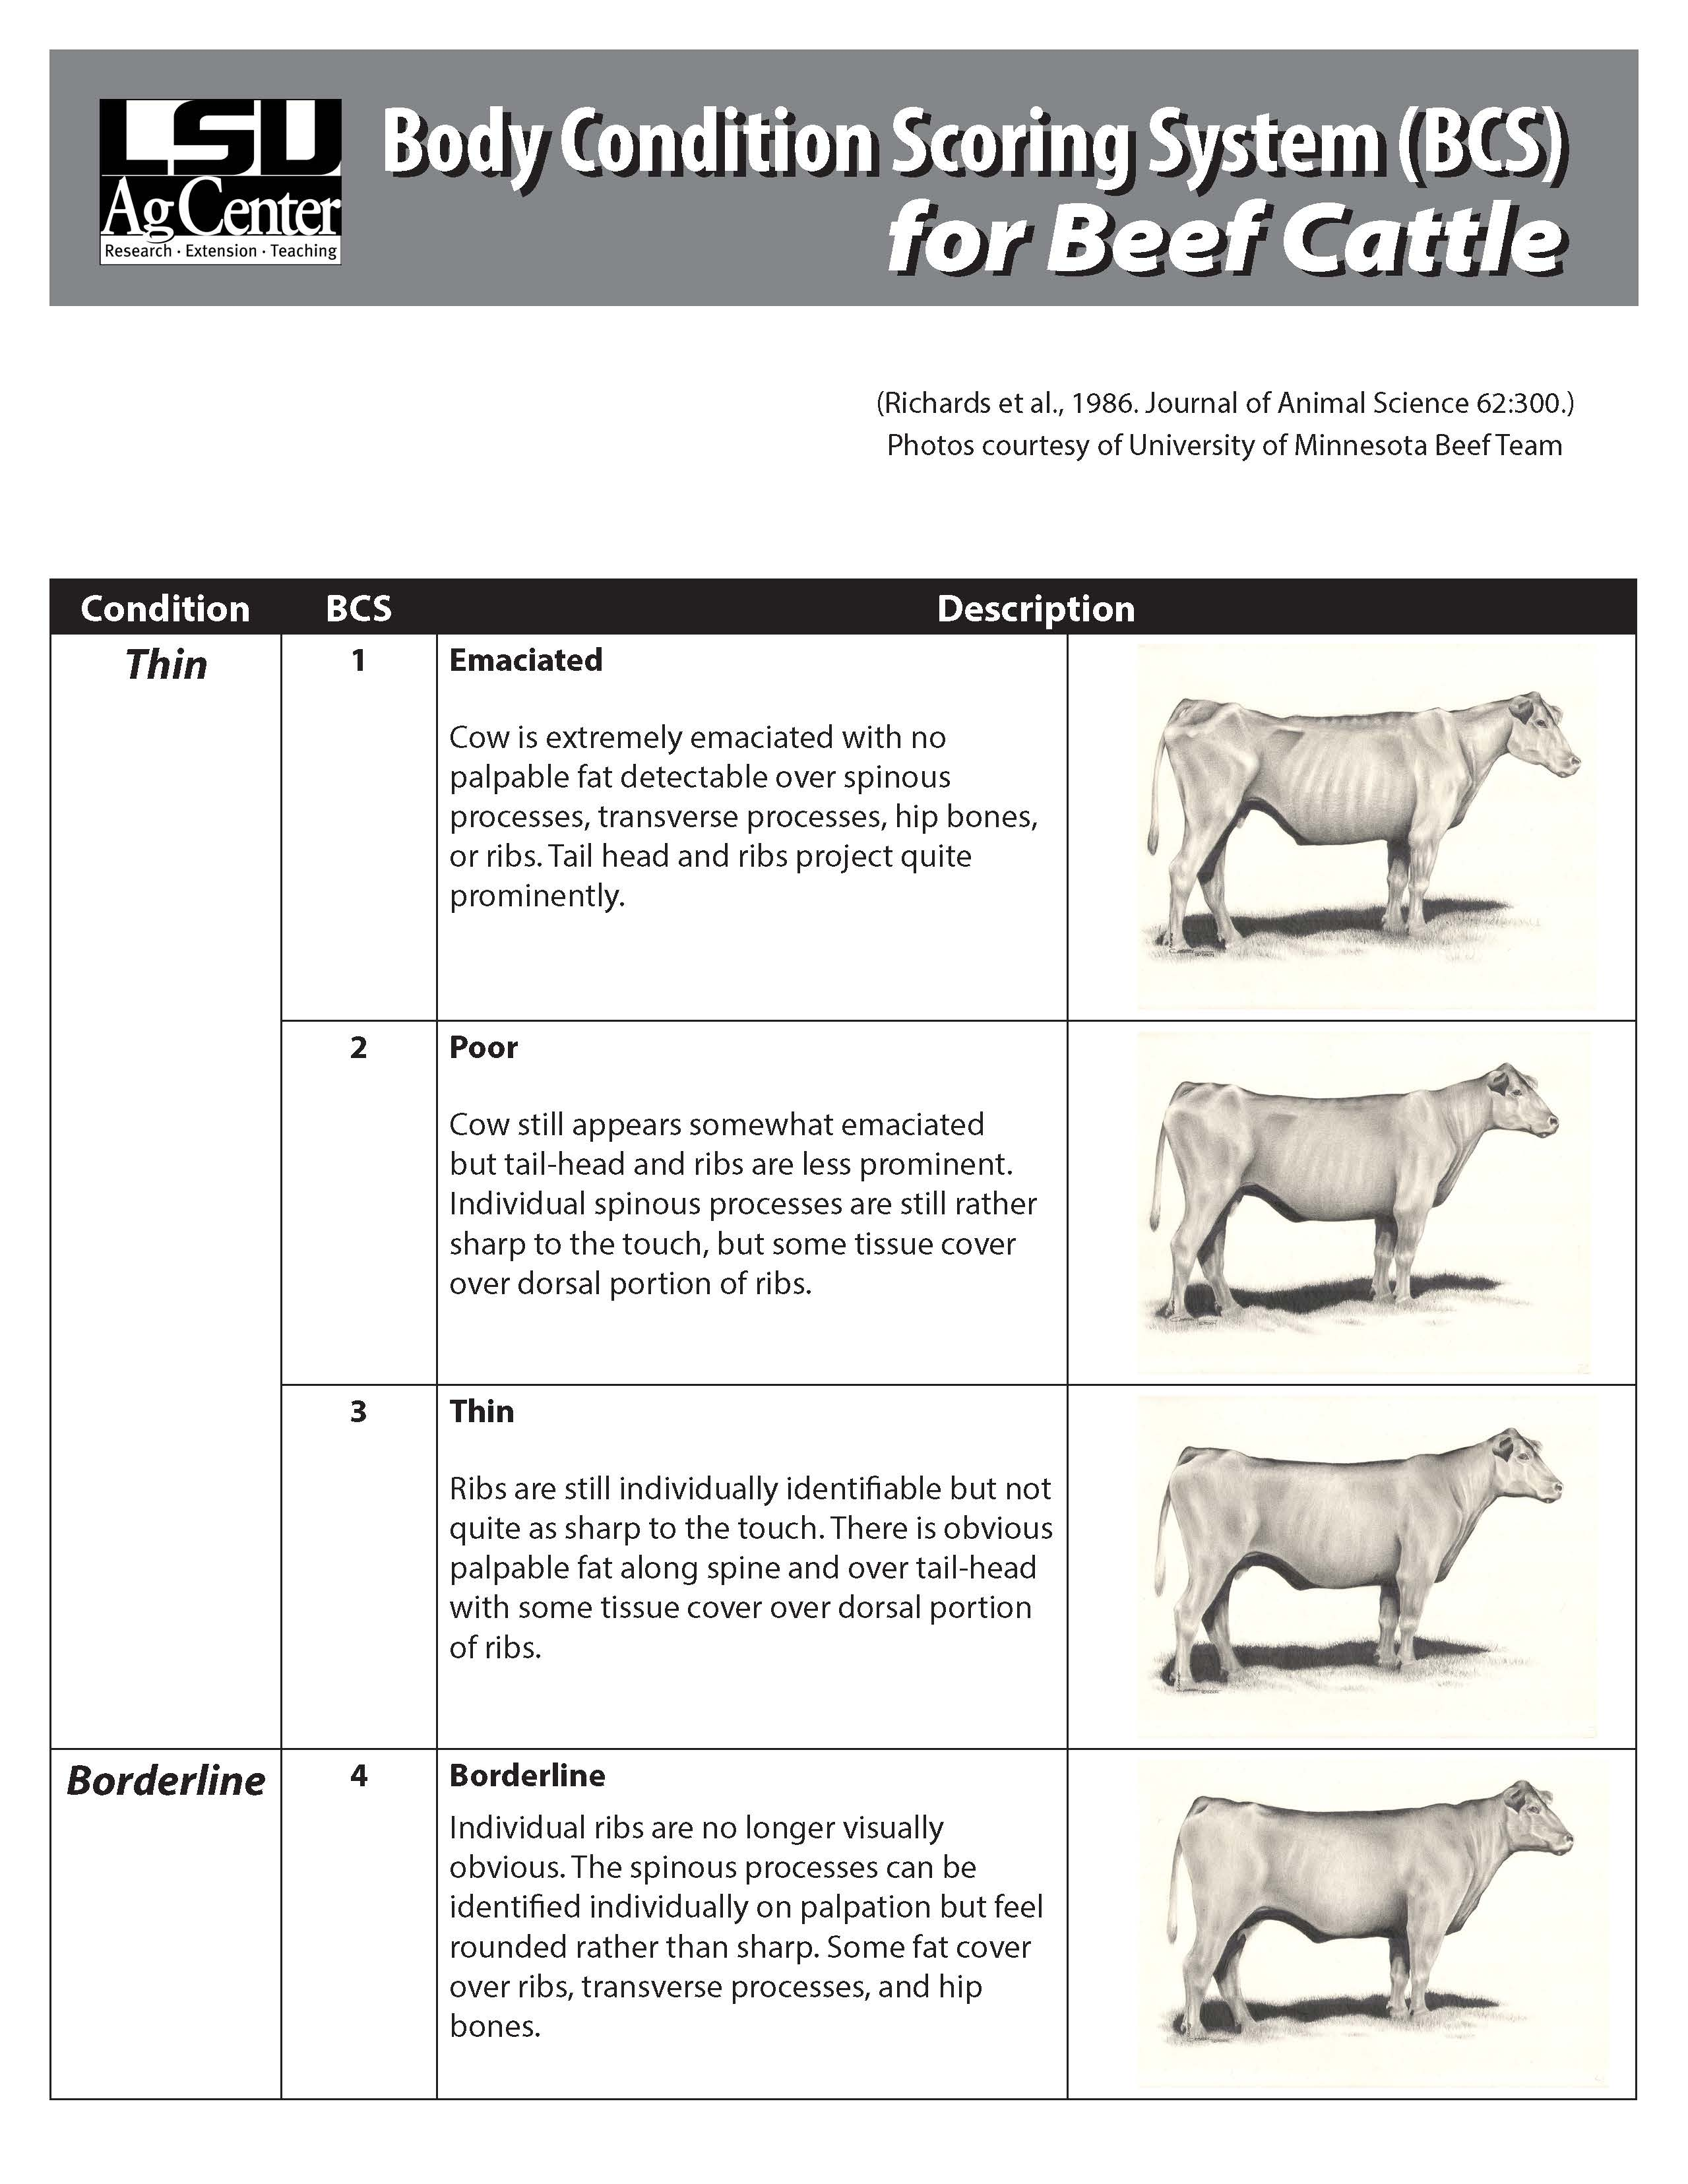 Body Condition Scoring System (BCS) for Beef Cattle